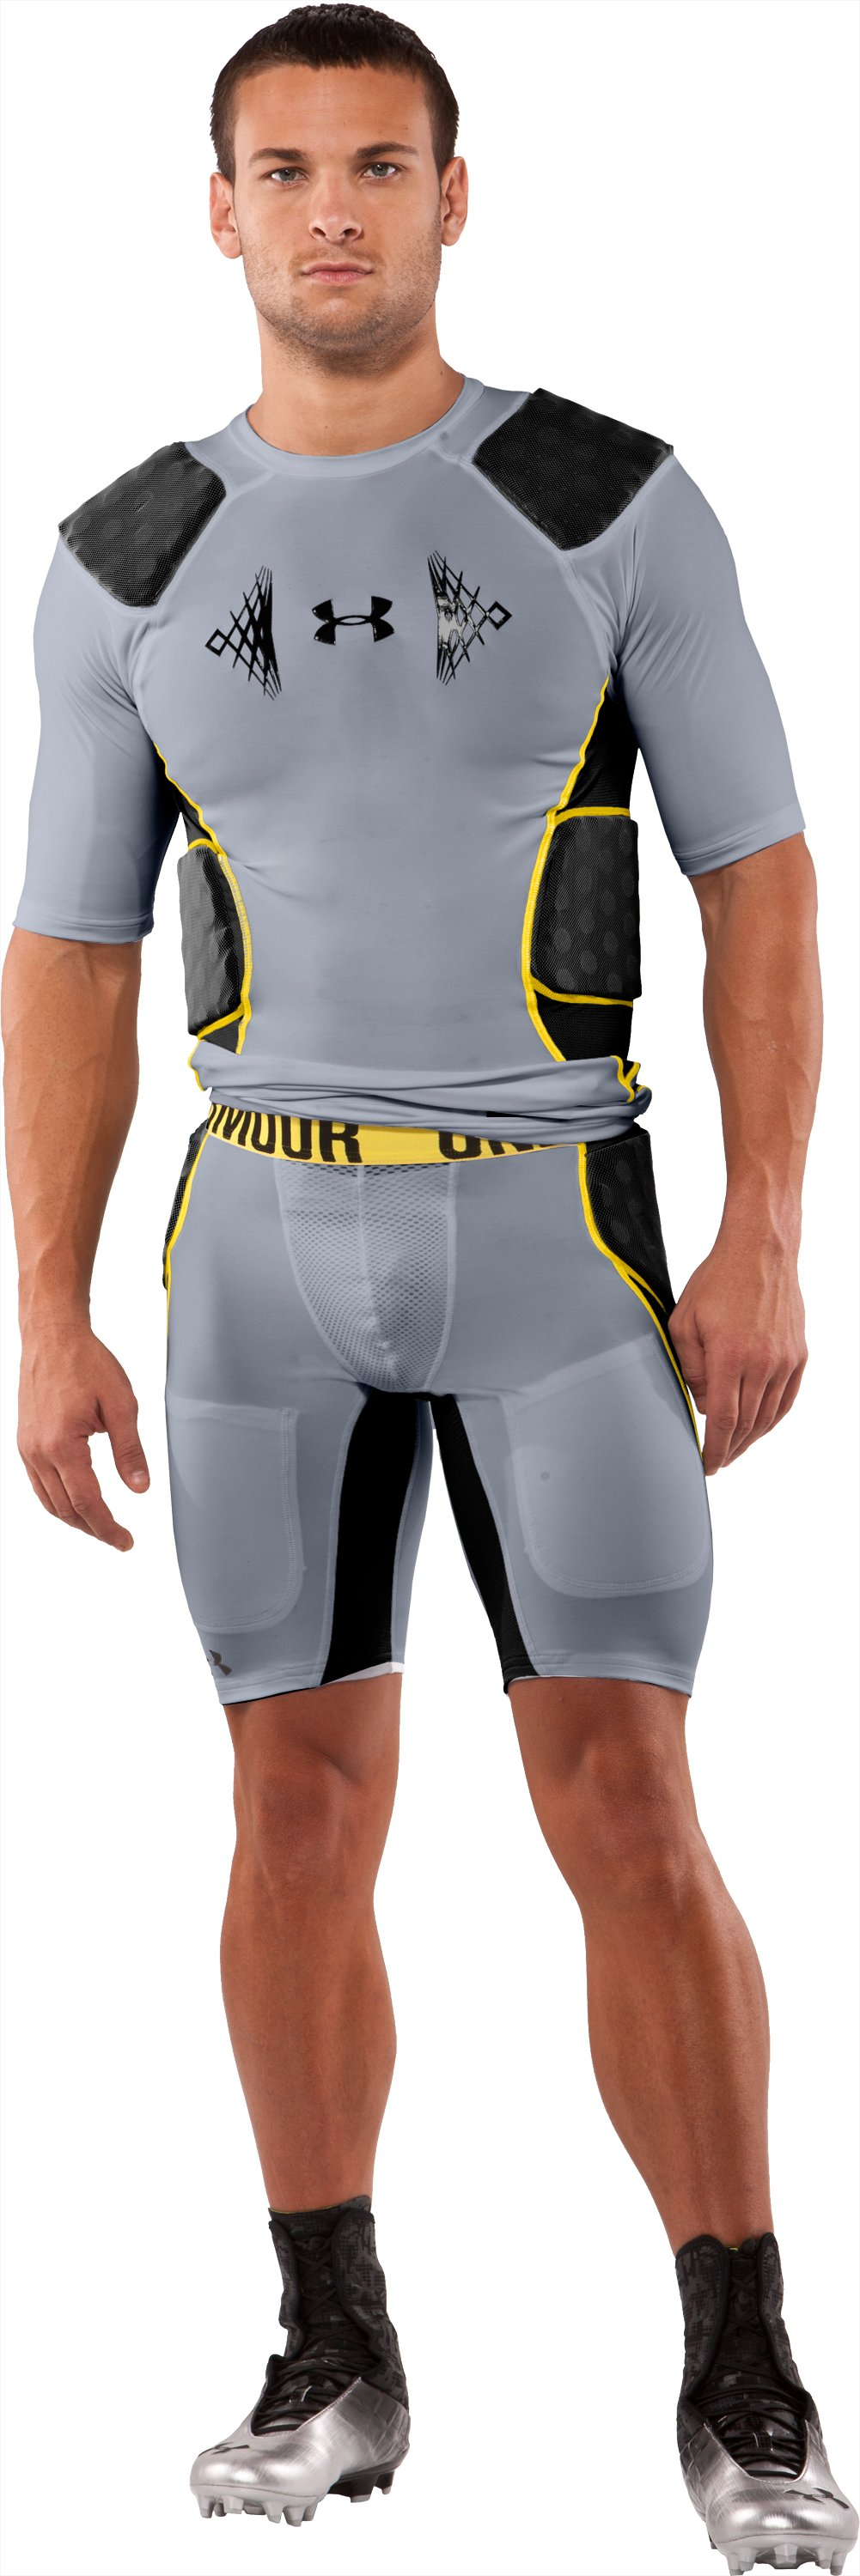 Men's MPZ® 3-Pad Armour® Girdle, Steel